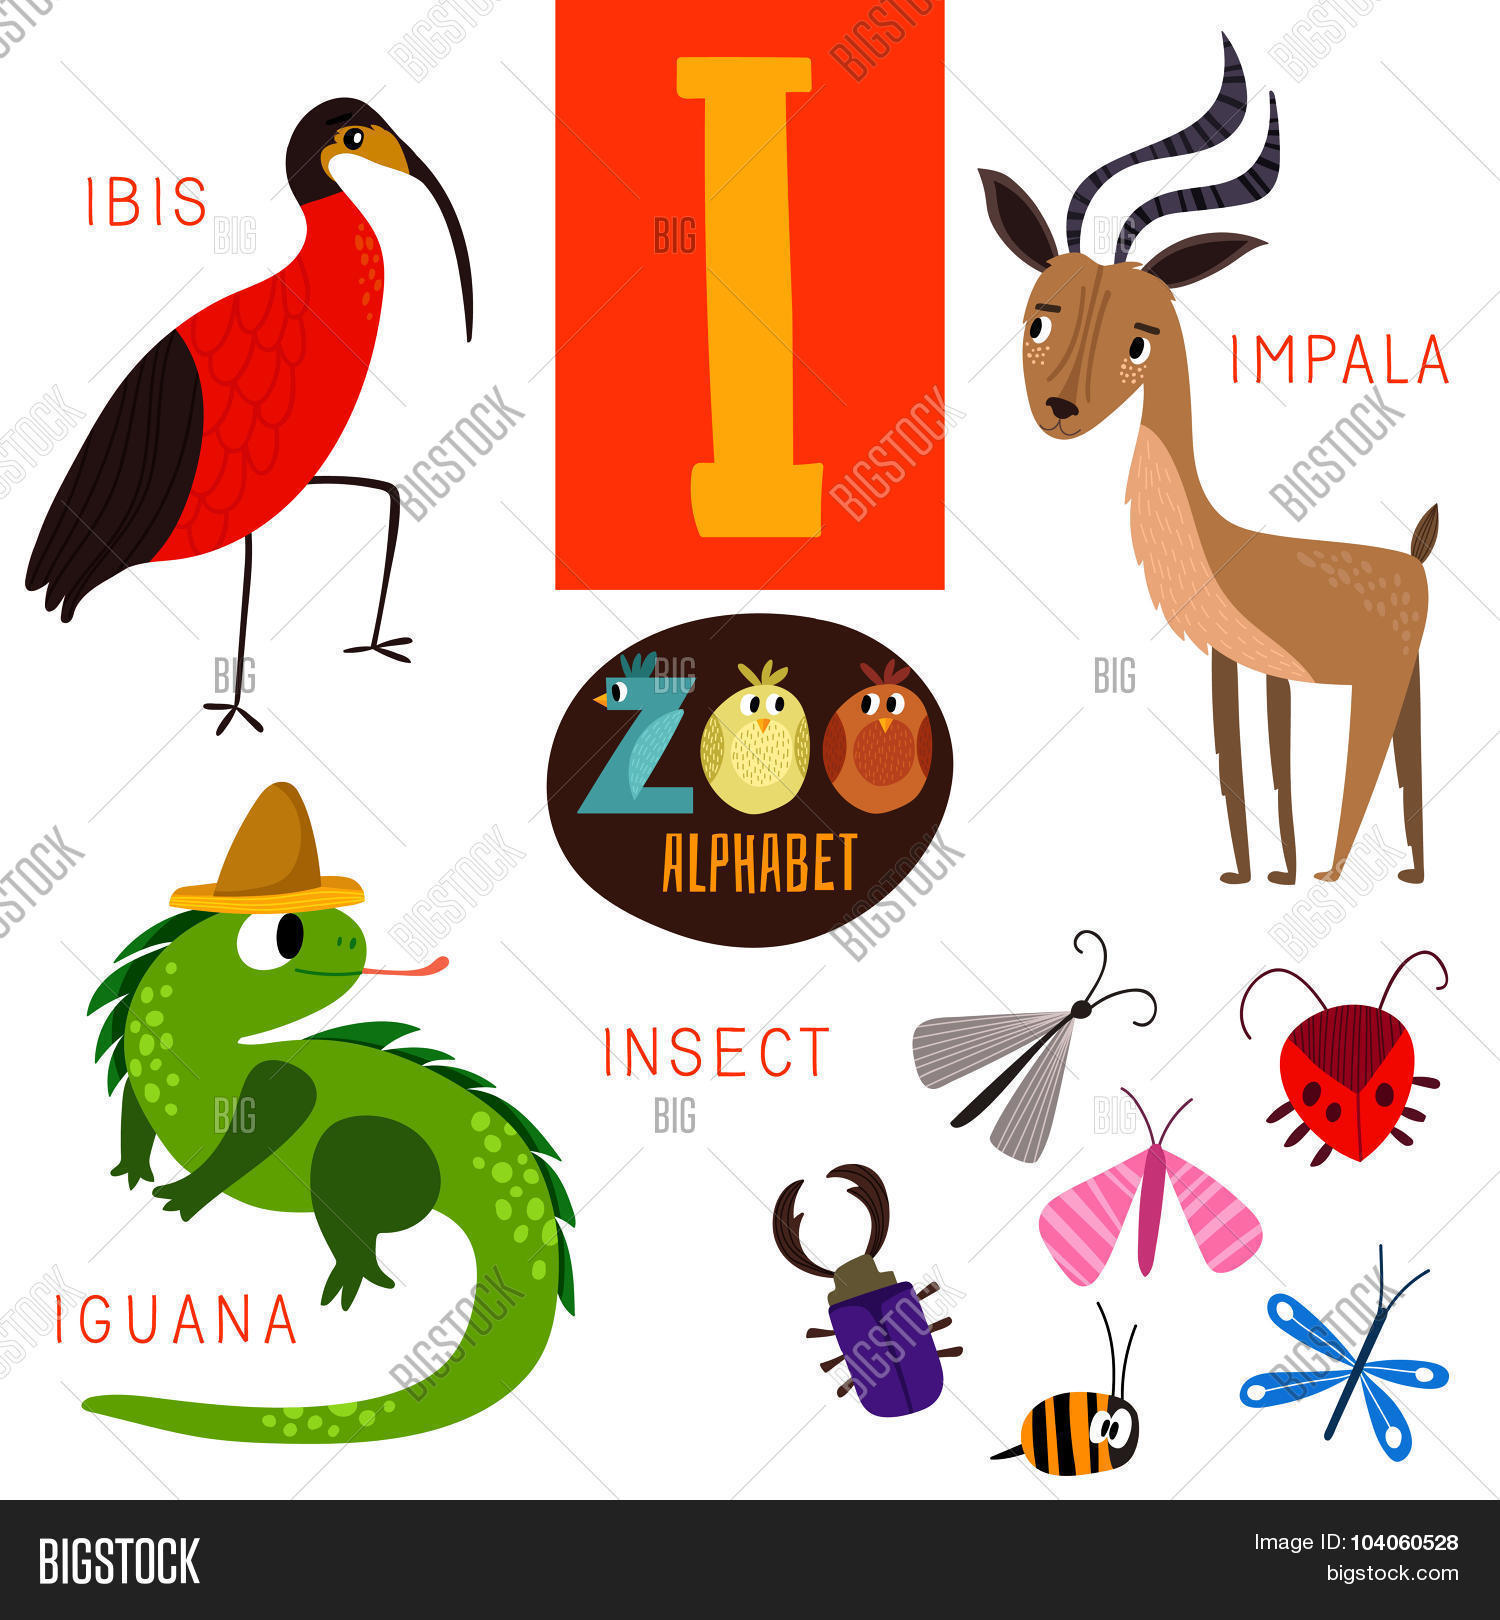 4 letter animals zoo alphabet vector photo free trial bigstock 20099 | 104060528